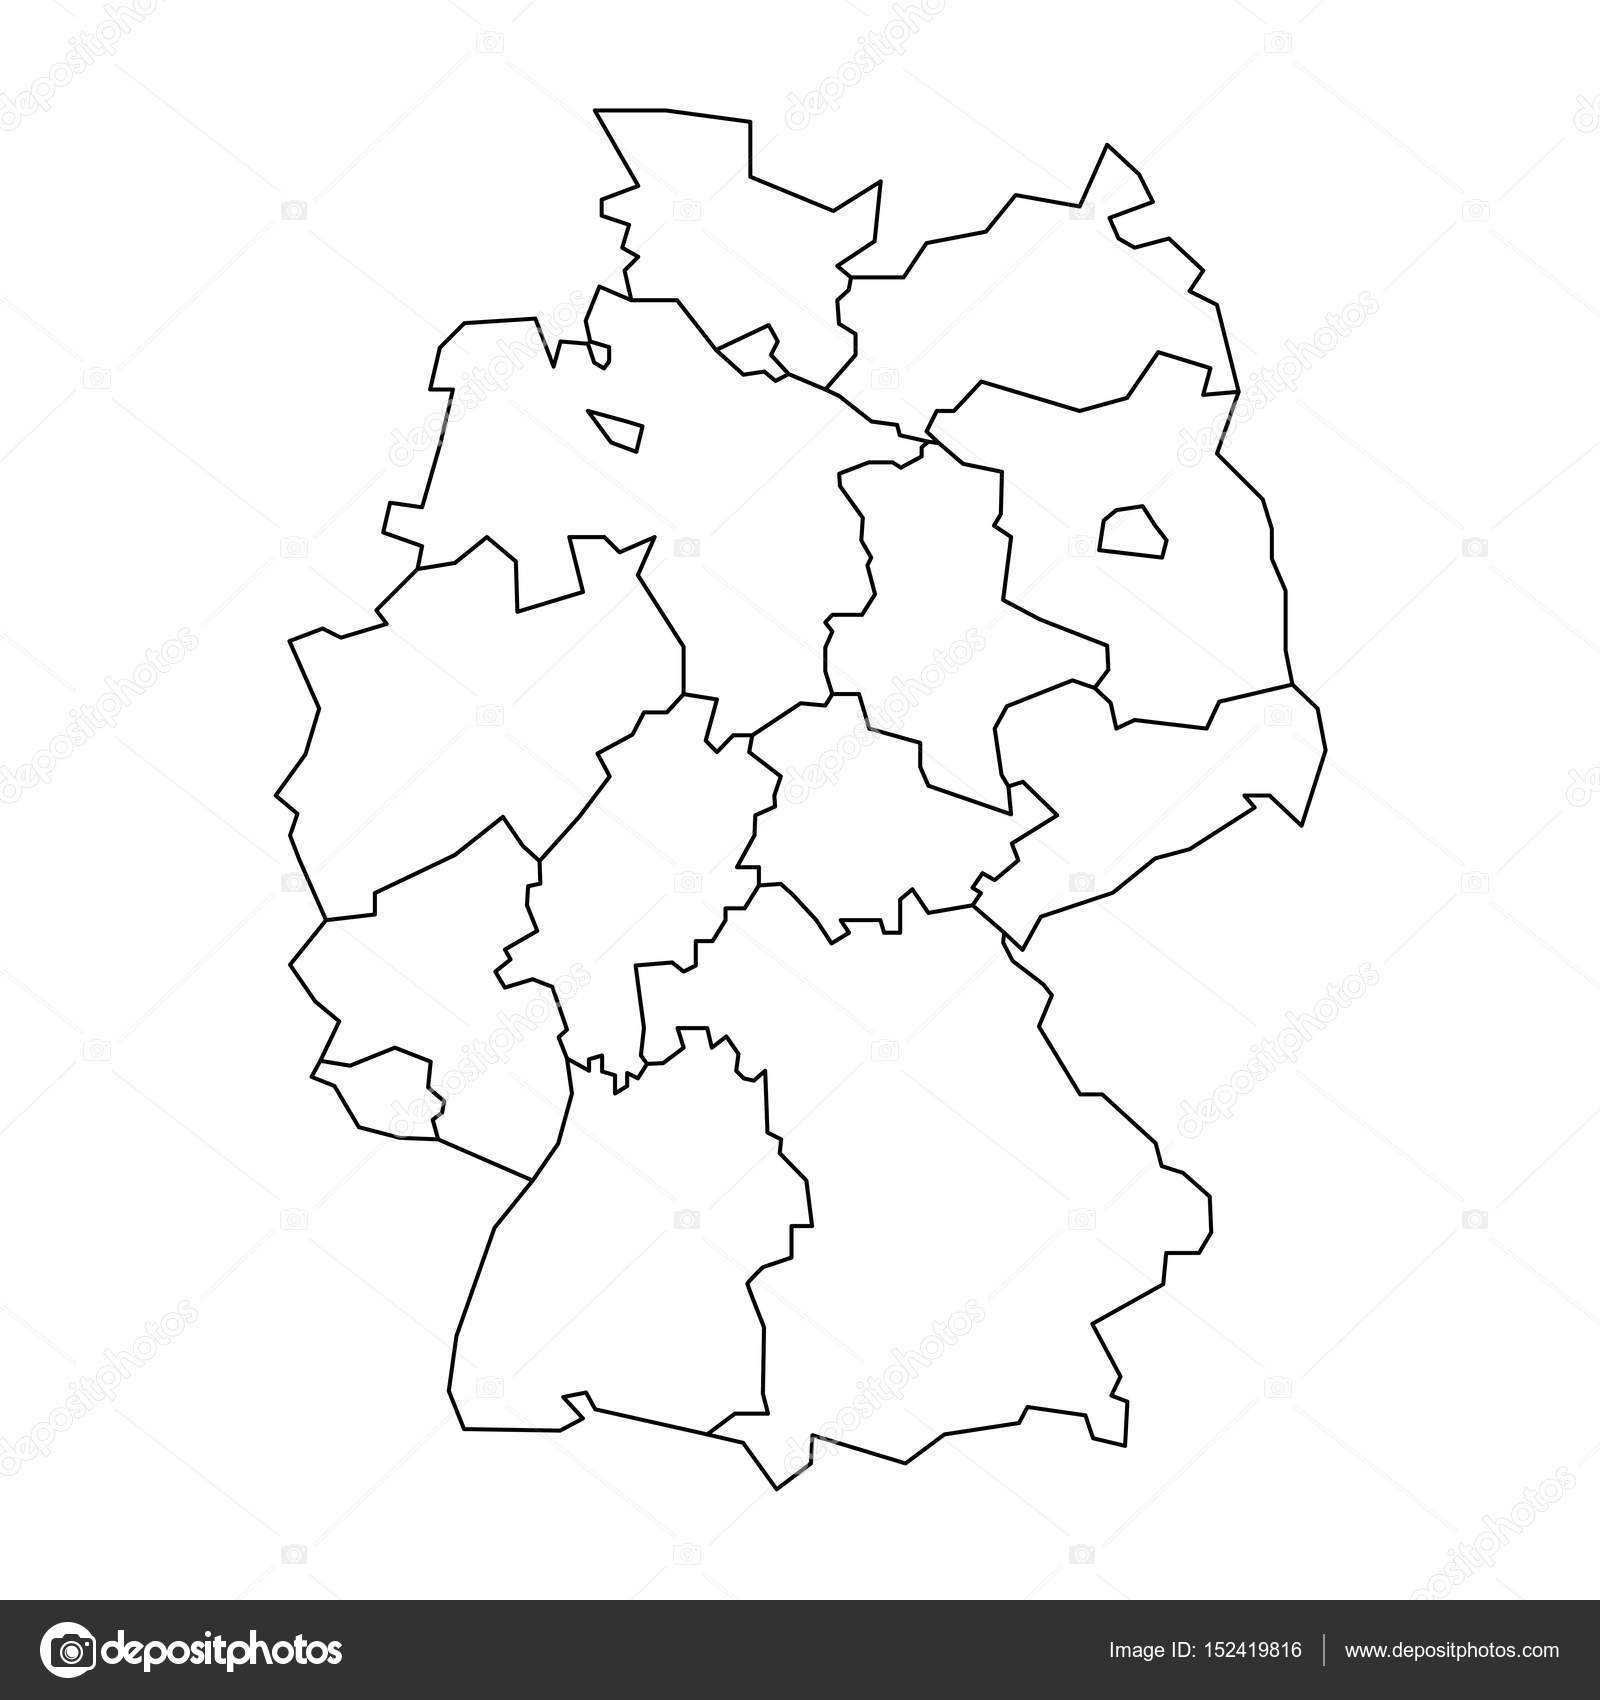 Map Of Germany Devided To 13 Federal States And 3 City States